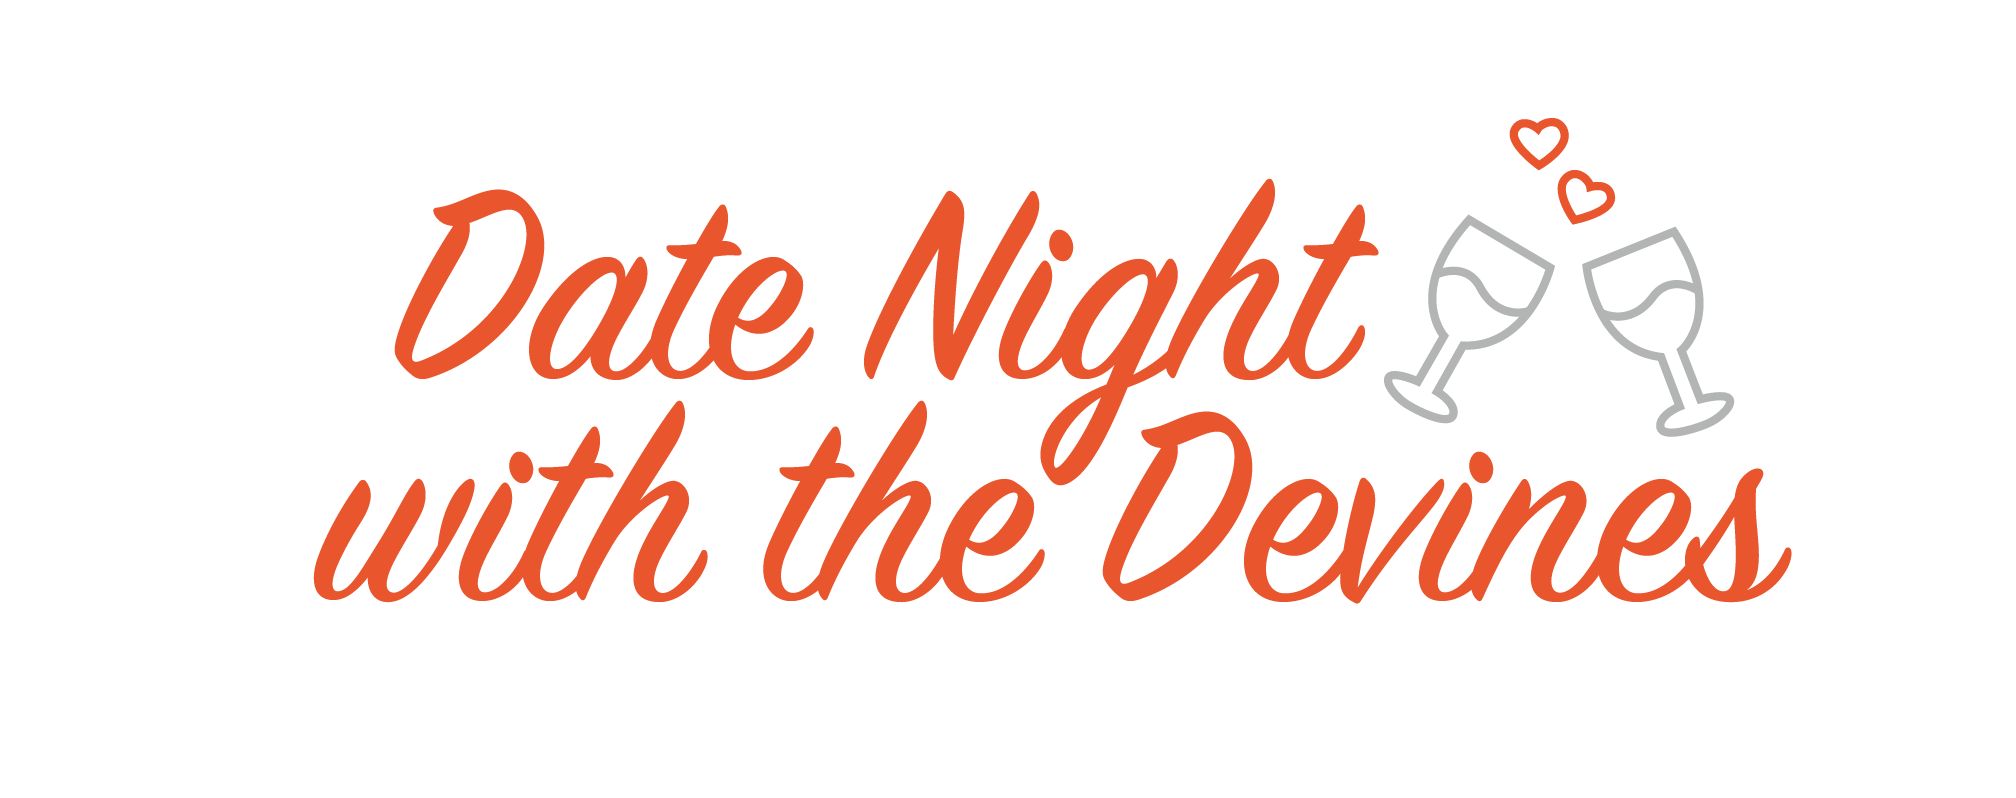 3376_DateNightLogo_01